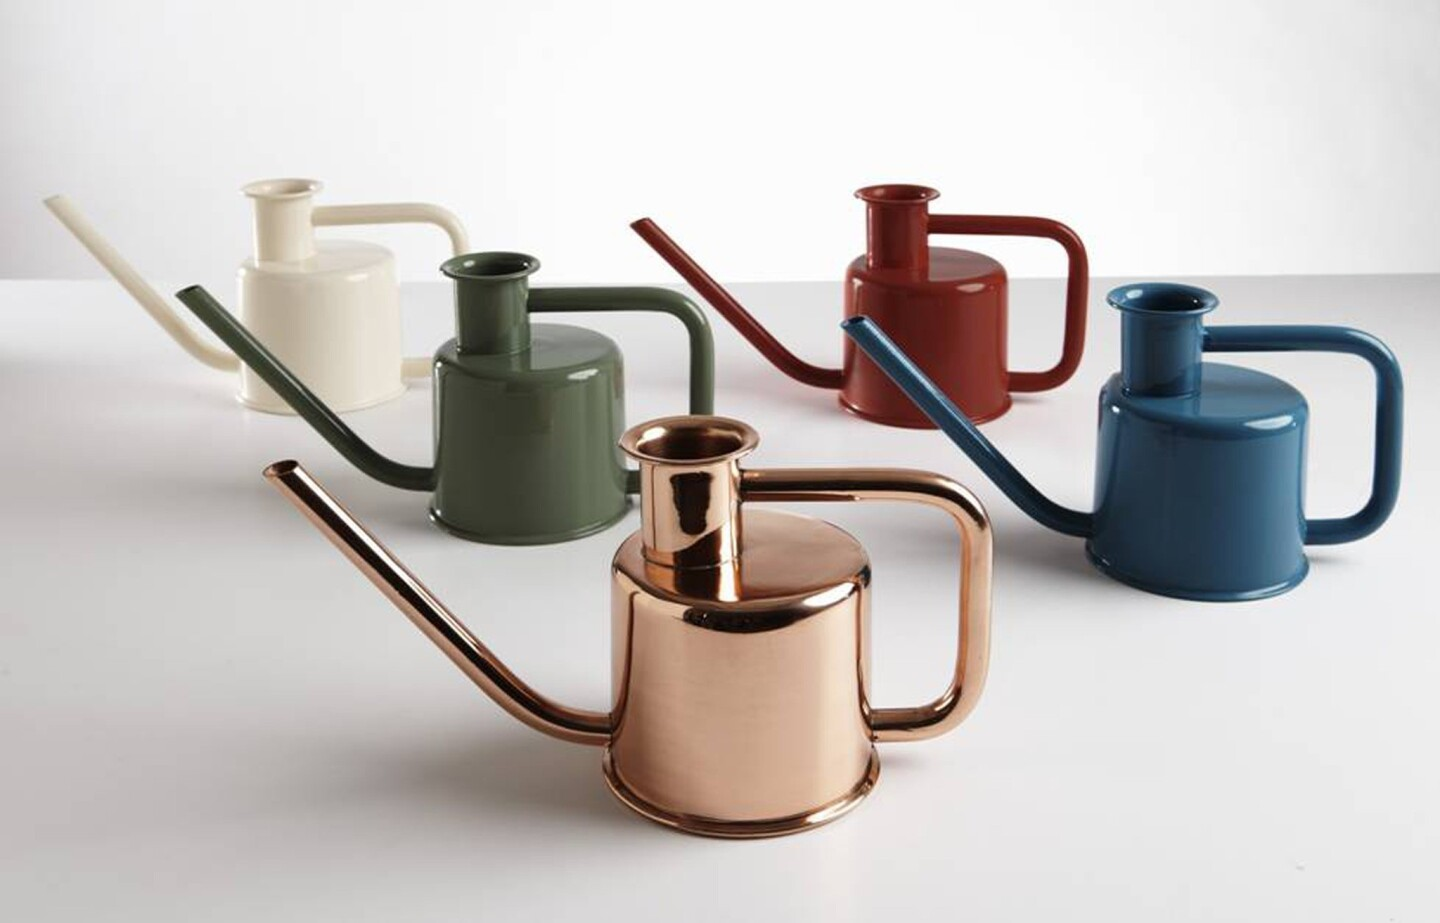 Kontextür, the design firm behind the X3 metal watering can by Paul Loebach, touts not only the aesthetics but also the function of the new design: The right angles in the handle provide one easy grip for watering and another easy grip for carrying. The white, green, red and blue cans are $49 through the Kontextür store, and the copper ...